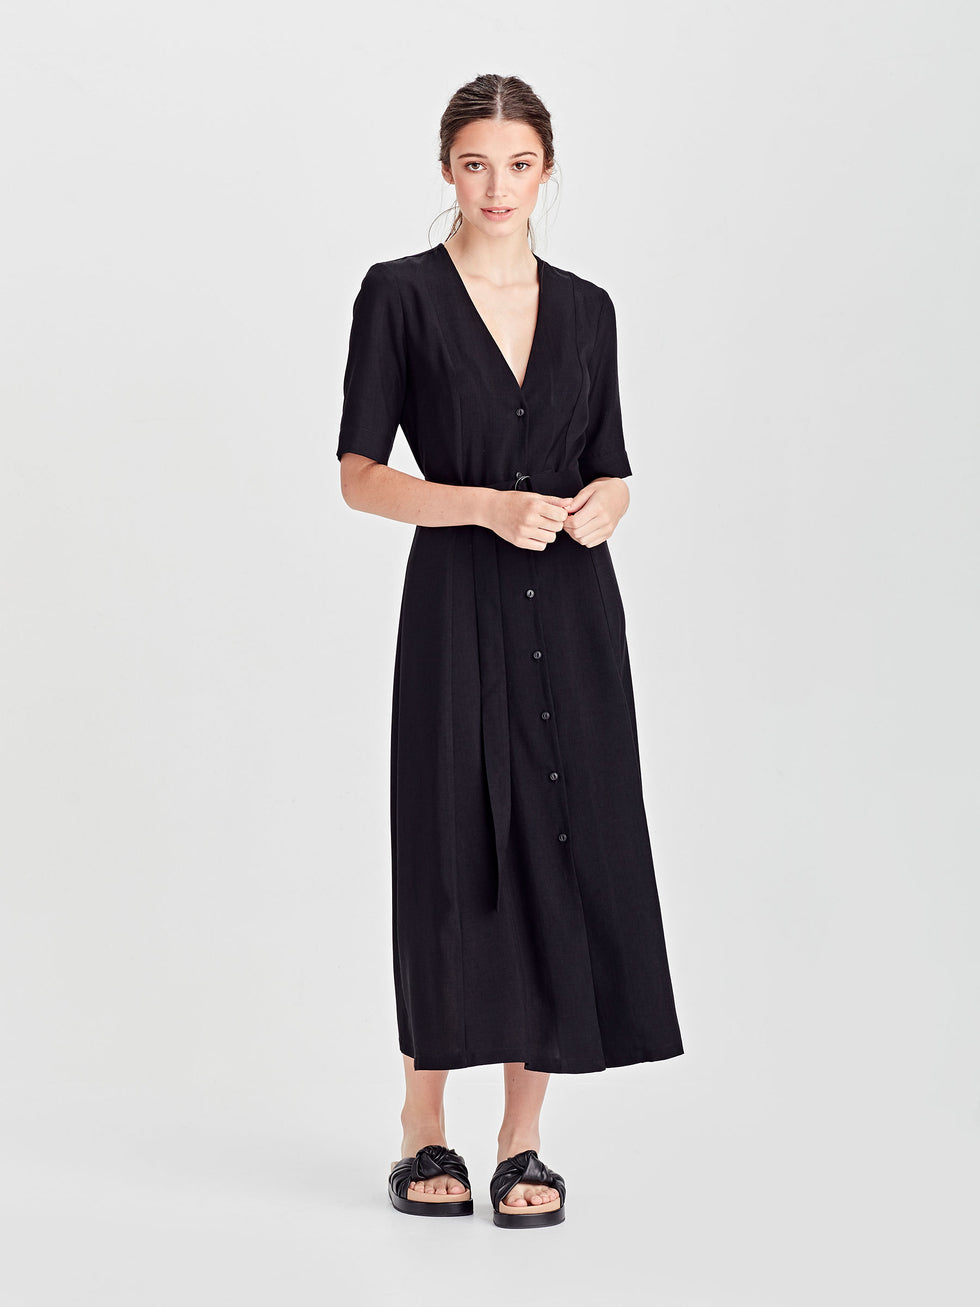 Elise Dress (Vintage Triacetate) Black